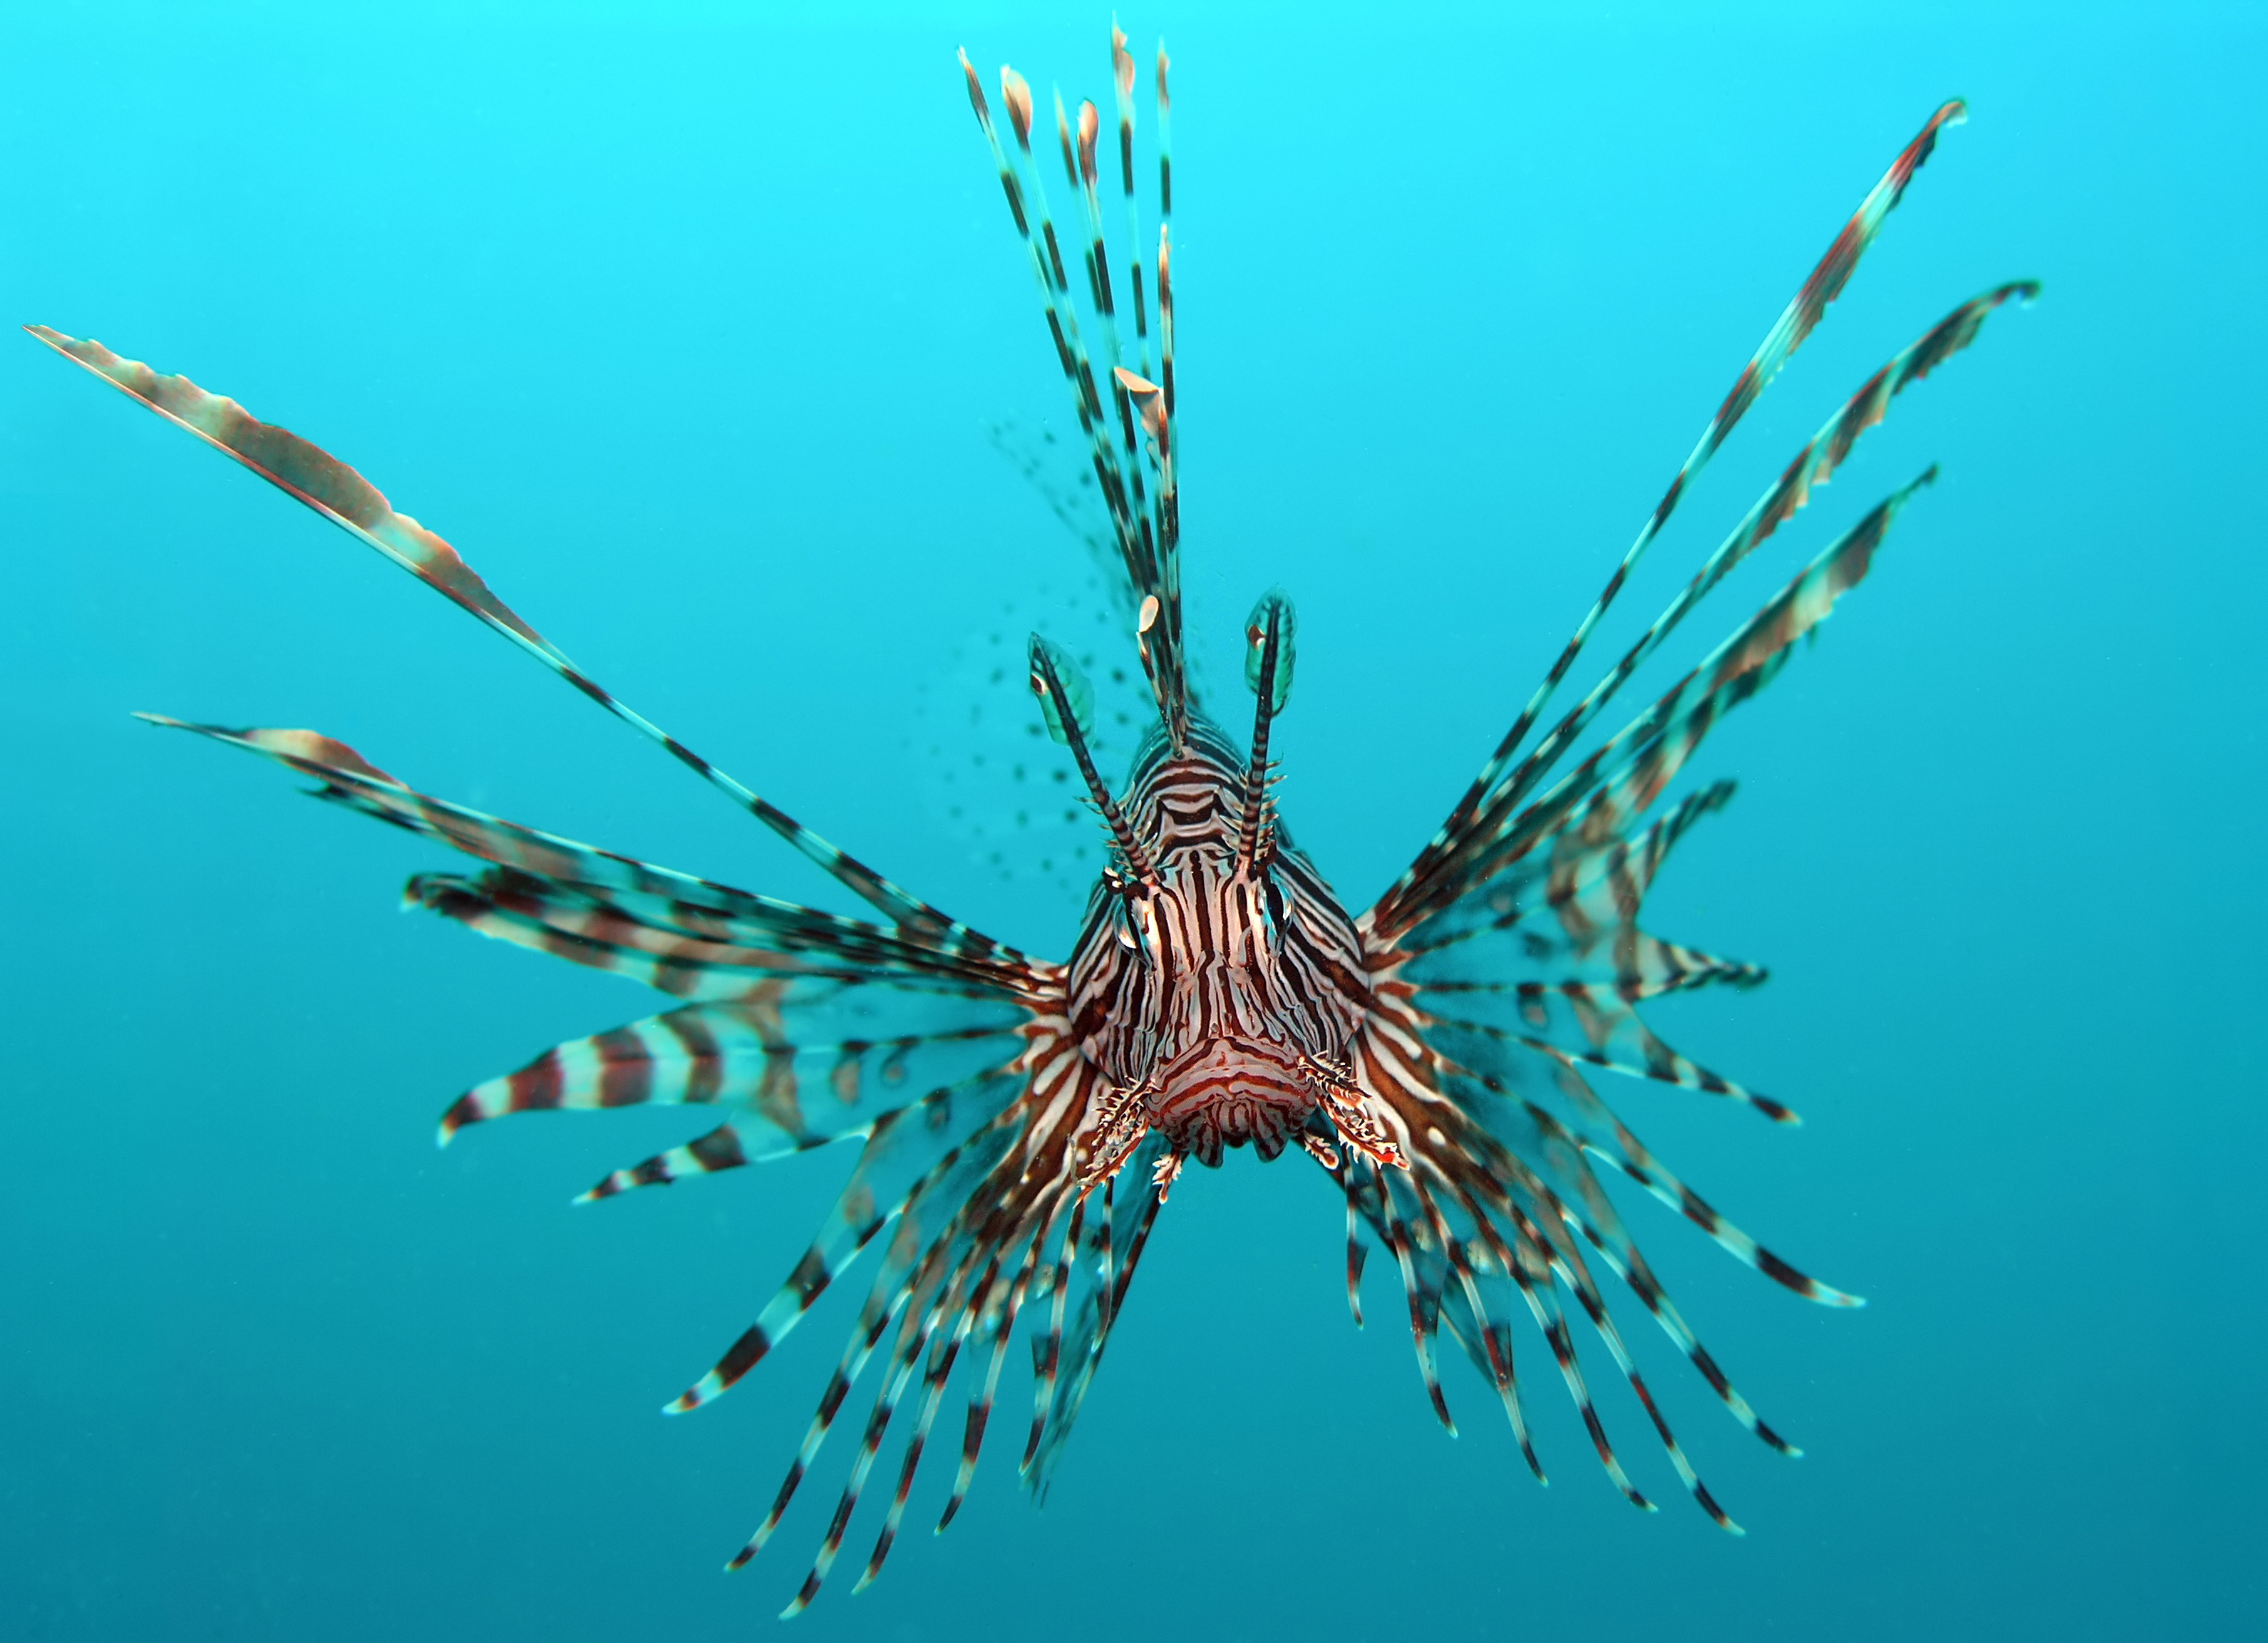 Freshwater fish kingdom - Head On View Of A Red Lionfish